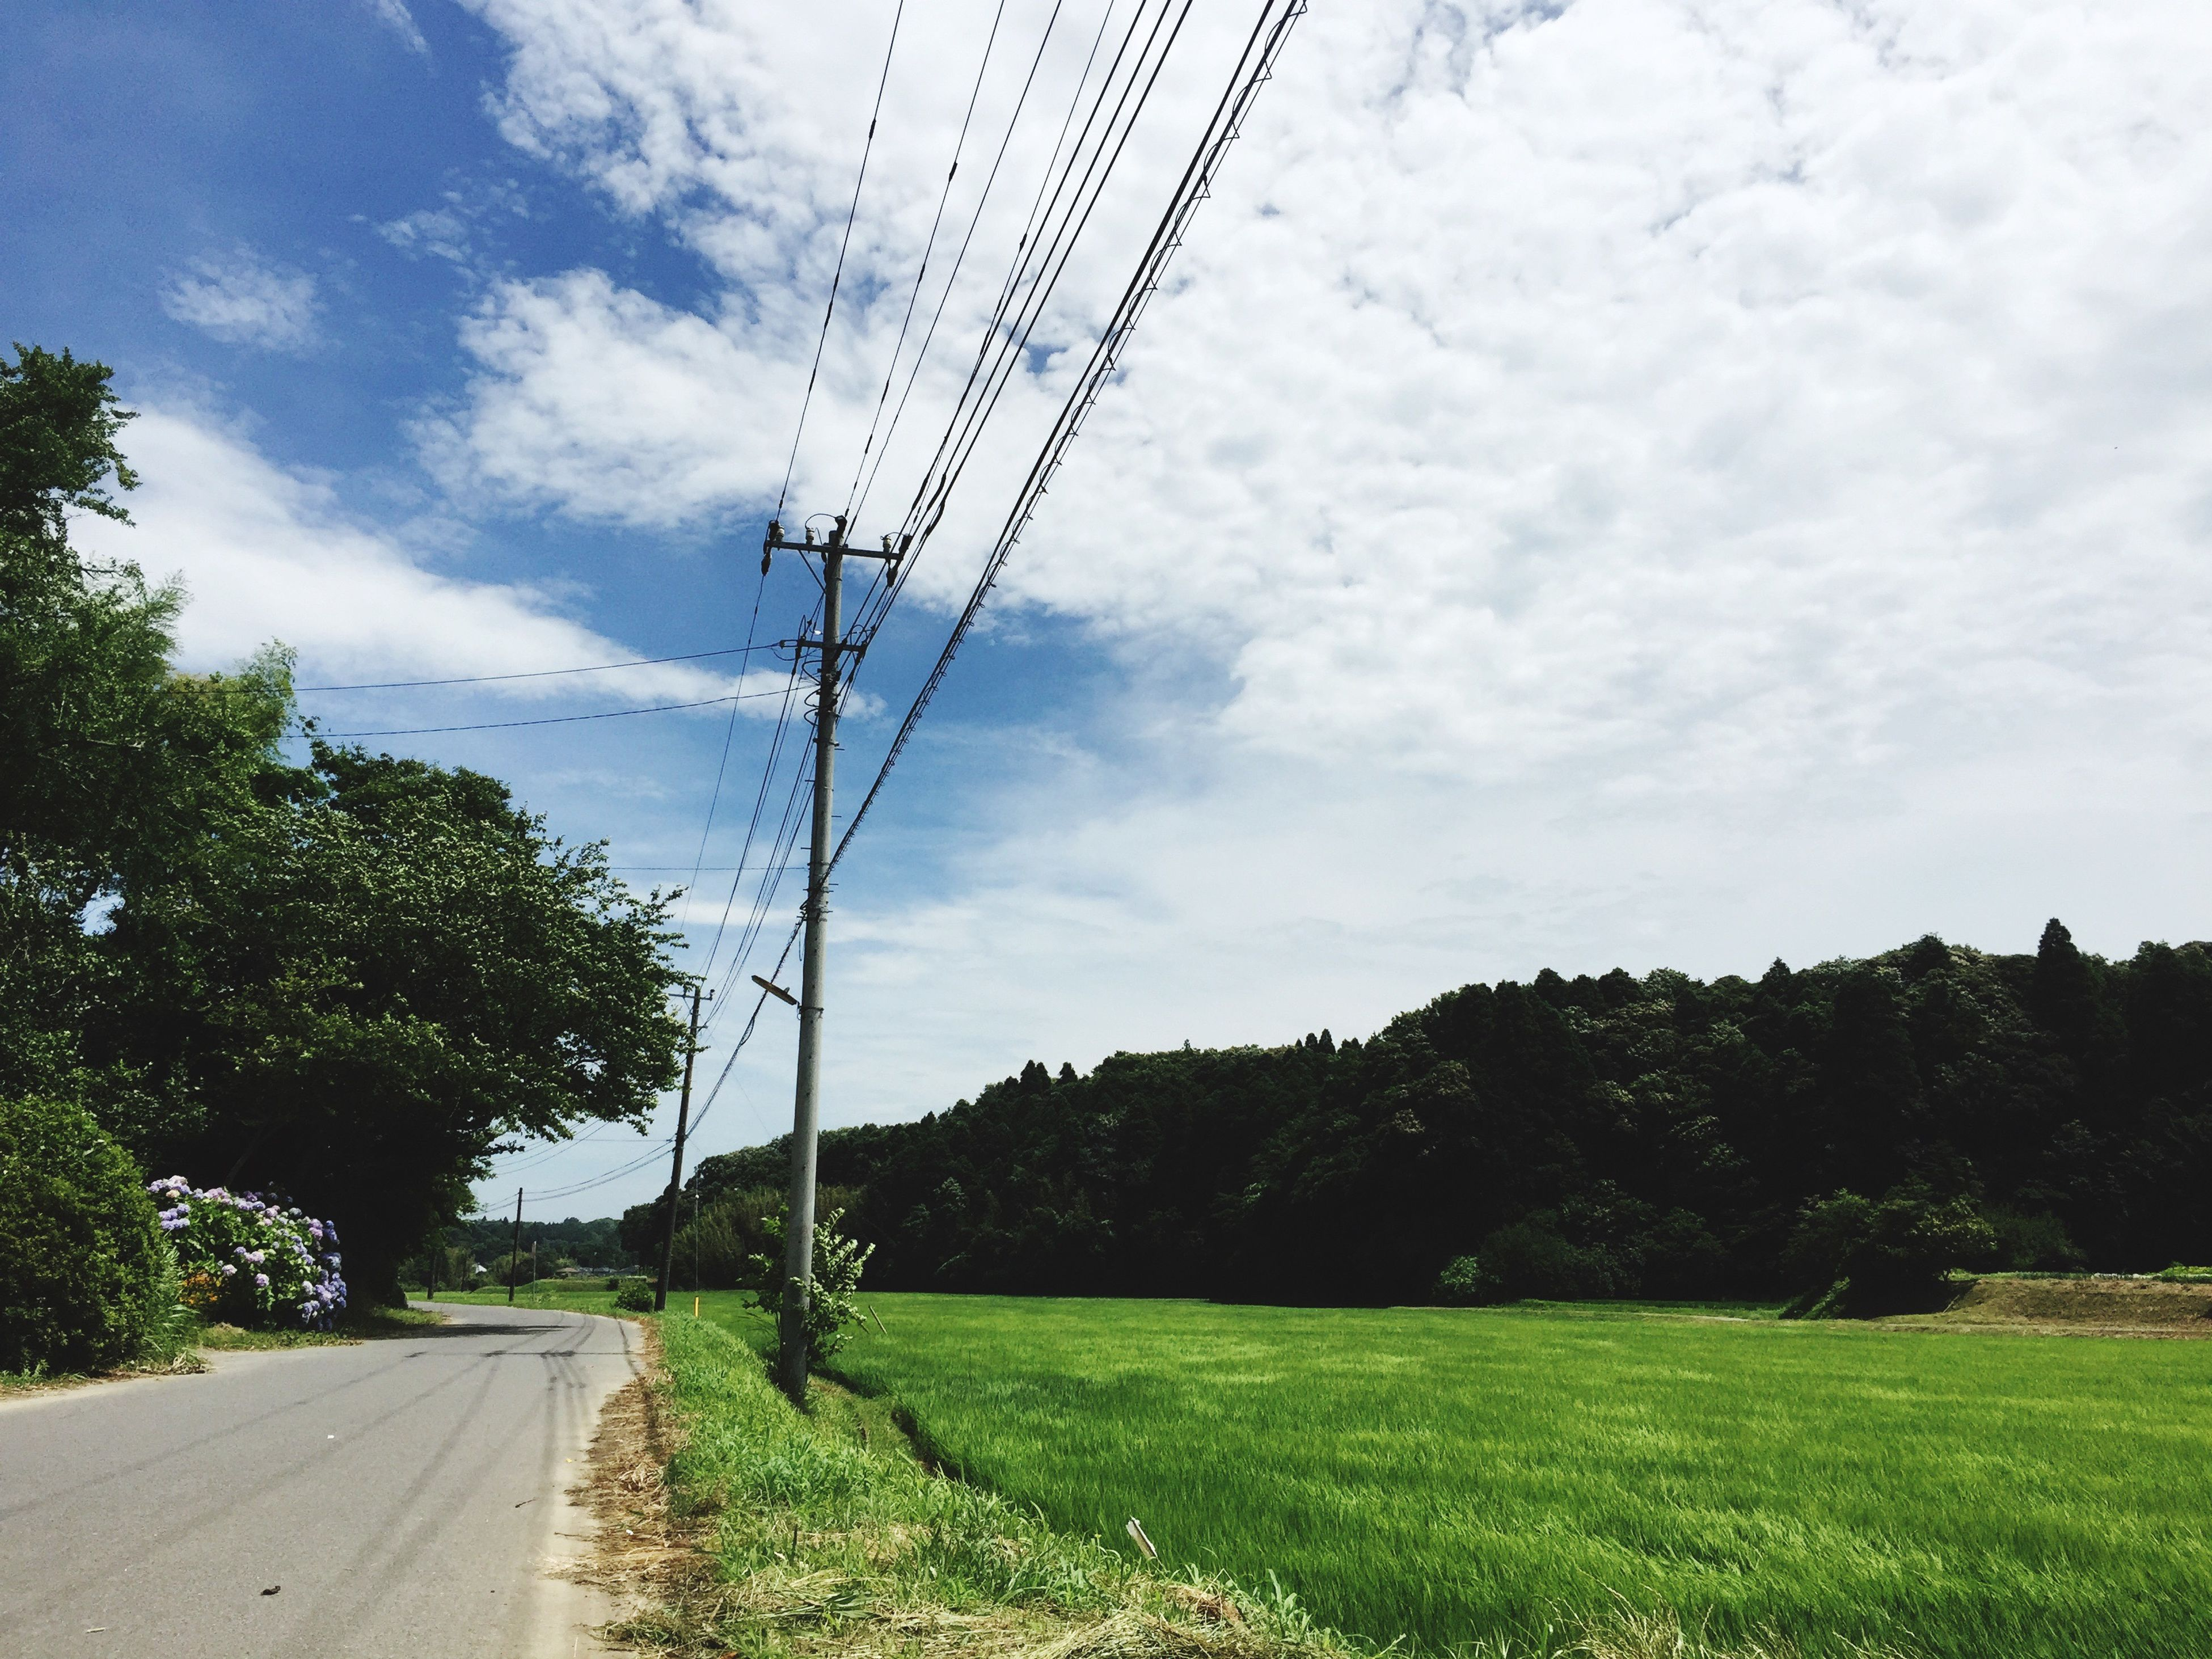 sky, tree, field, landscape, grass, electricity pylon, cloud - sky, road, tranquility, tranquil scene, power line, cloud, fuel and power generation, rural scene, the way forward, nature, transportation, growth, green color, scenics